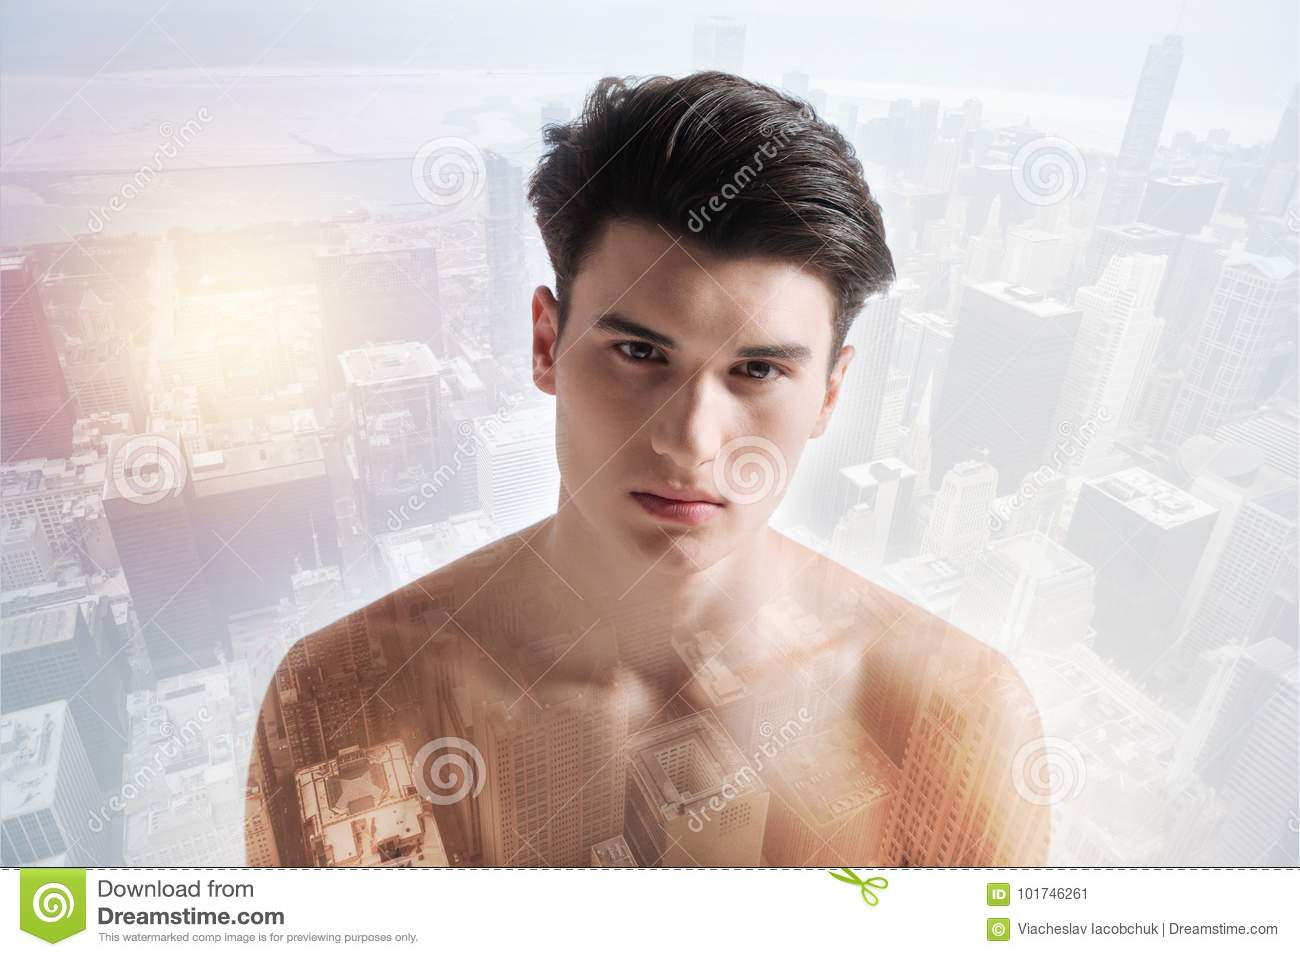 Upset naked boy having sadness in his eyes while standing against urban  background